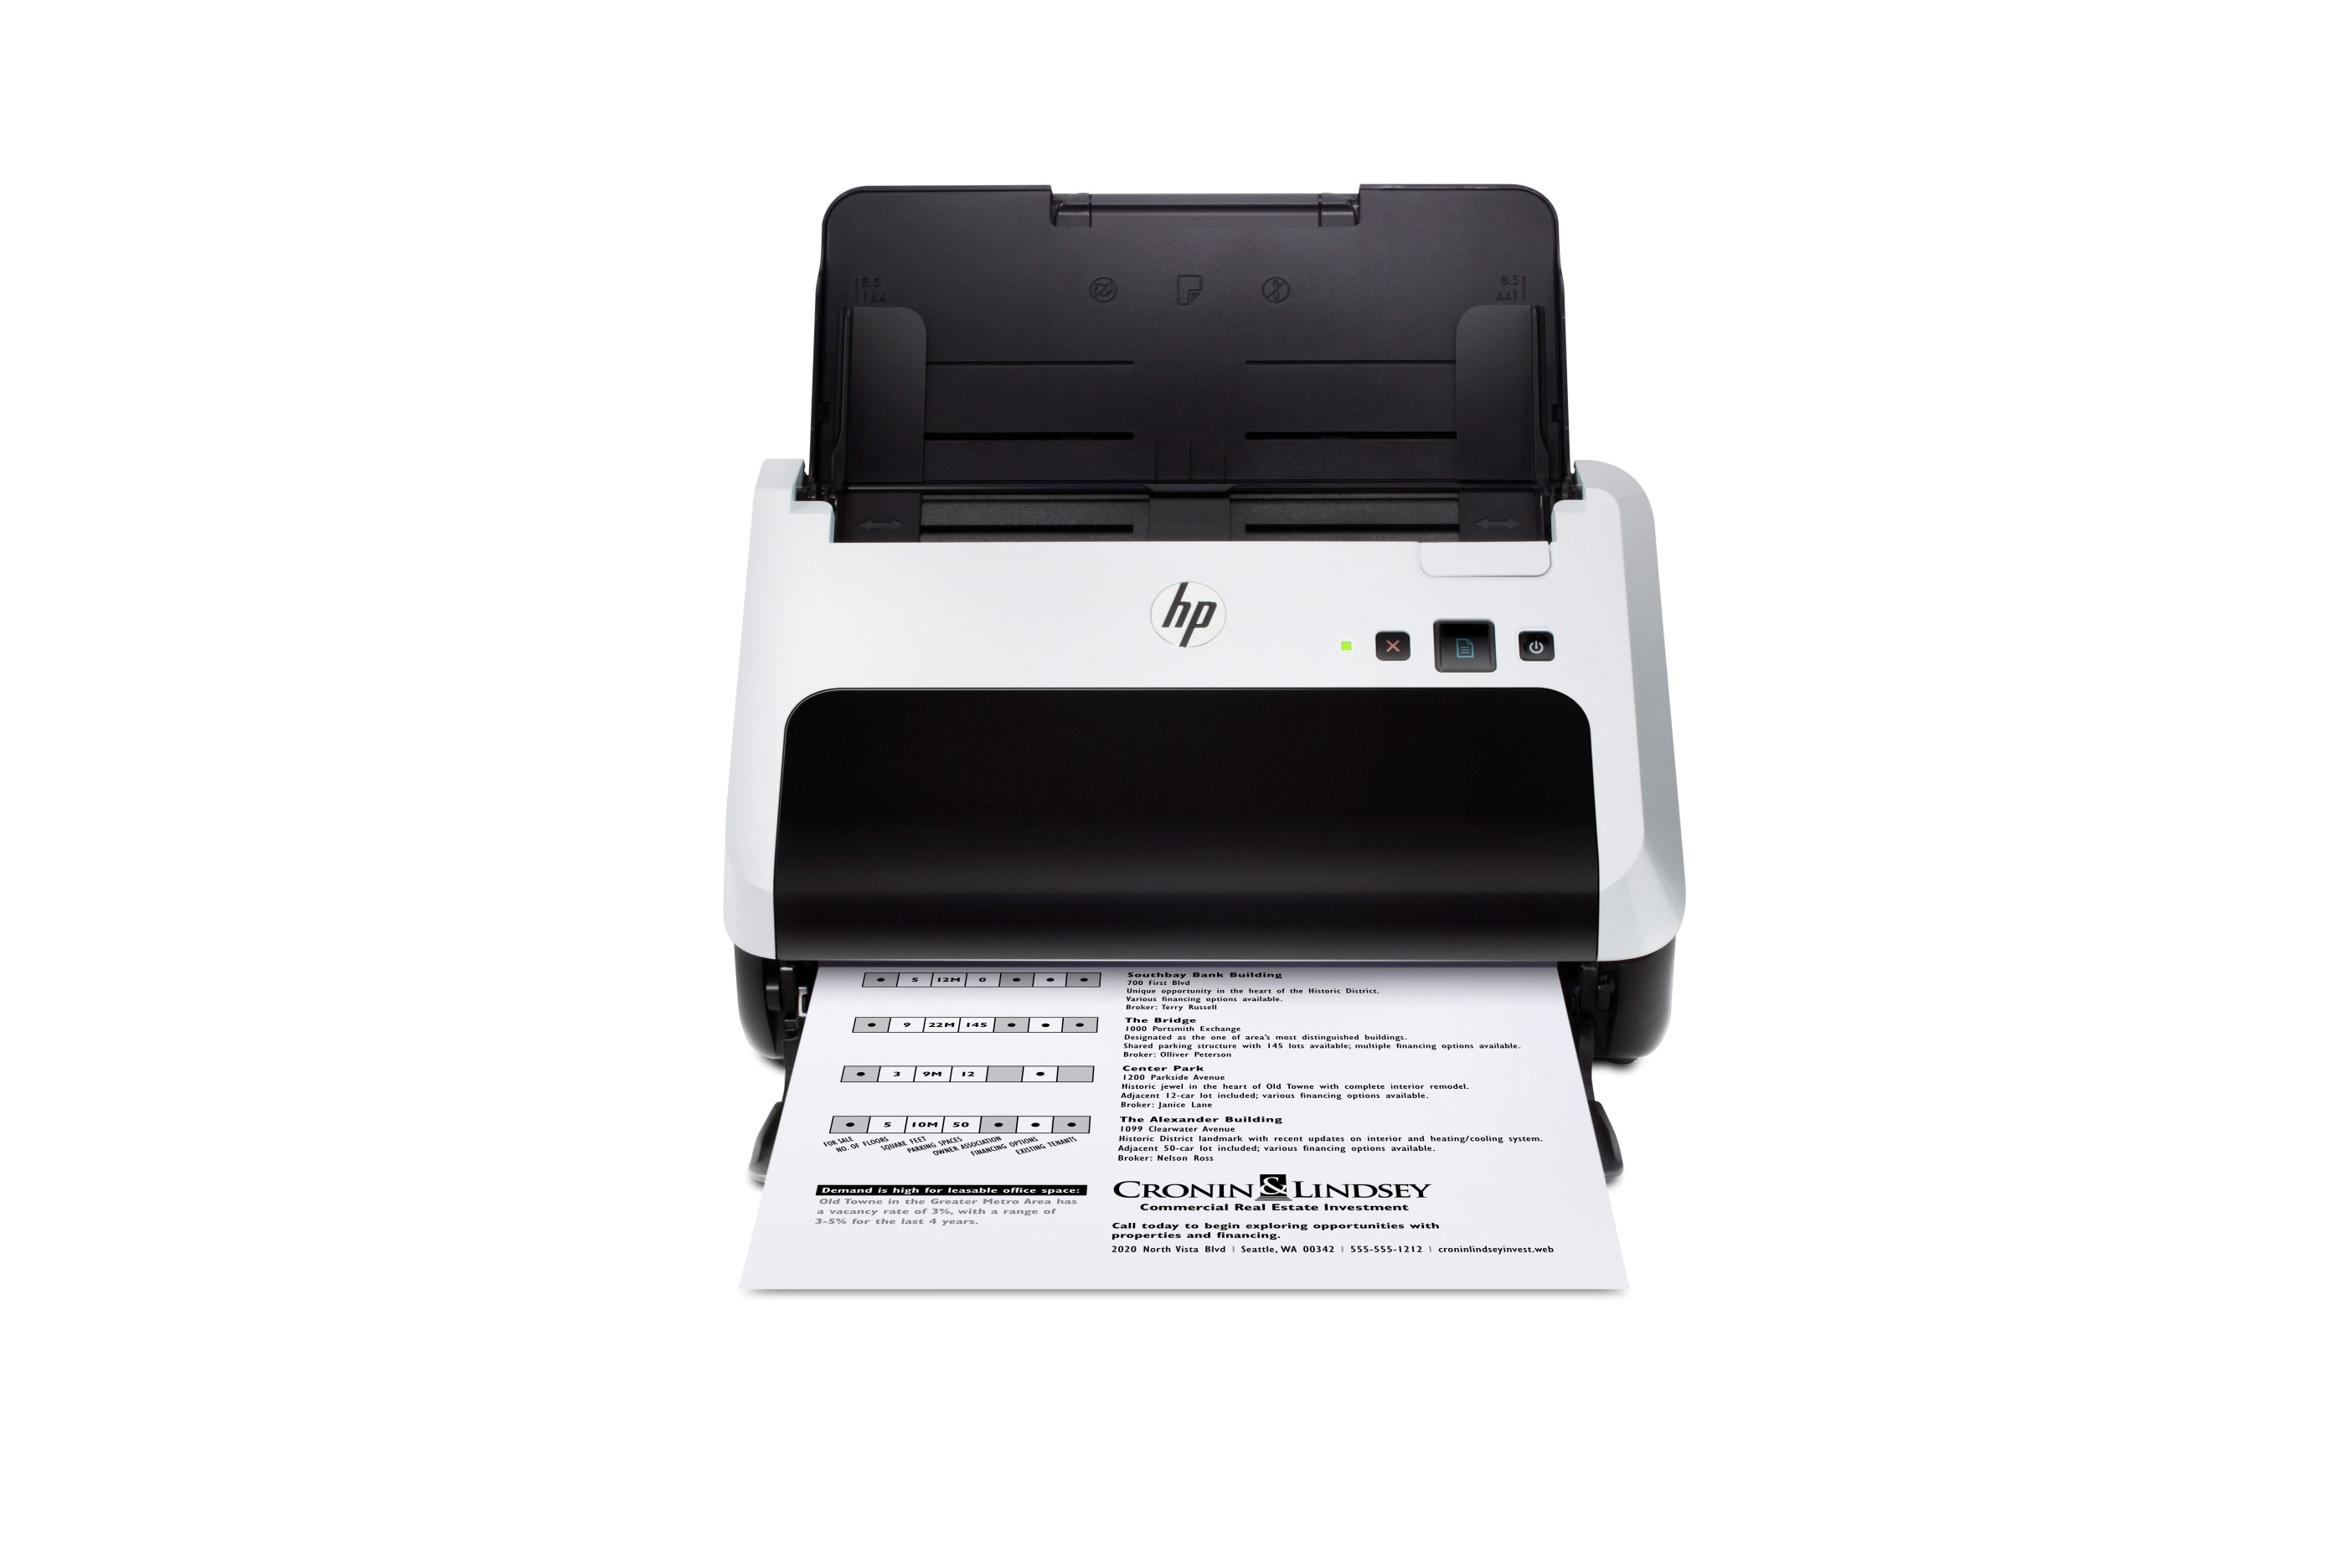 New HP multifunction printers and scanners for cost-conscious firms